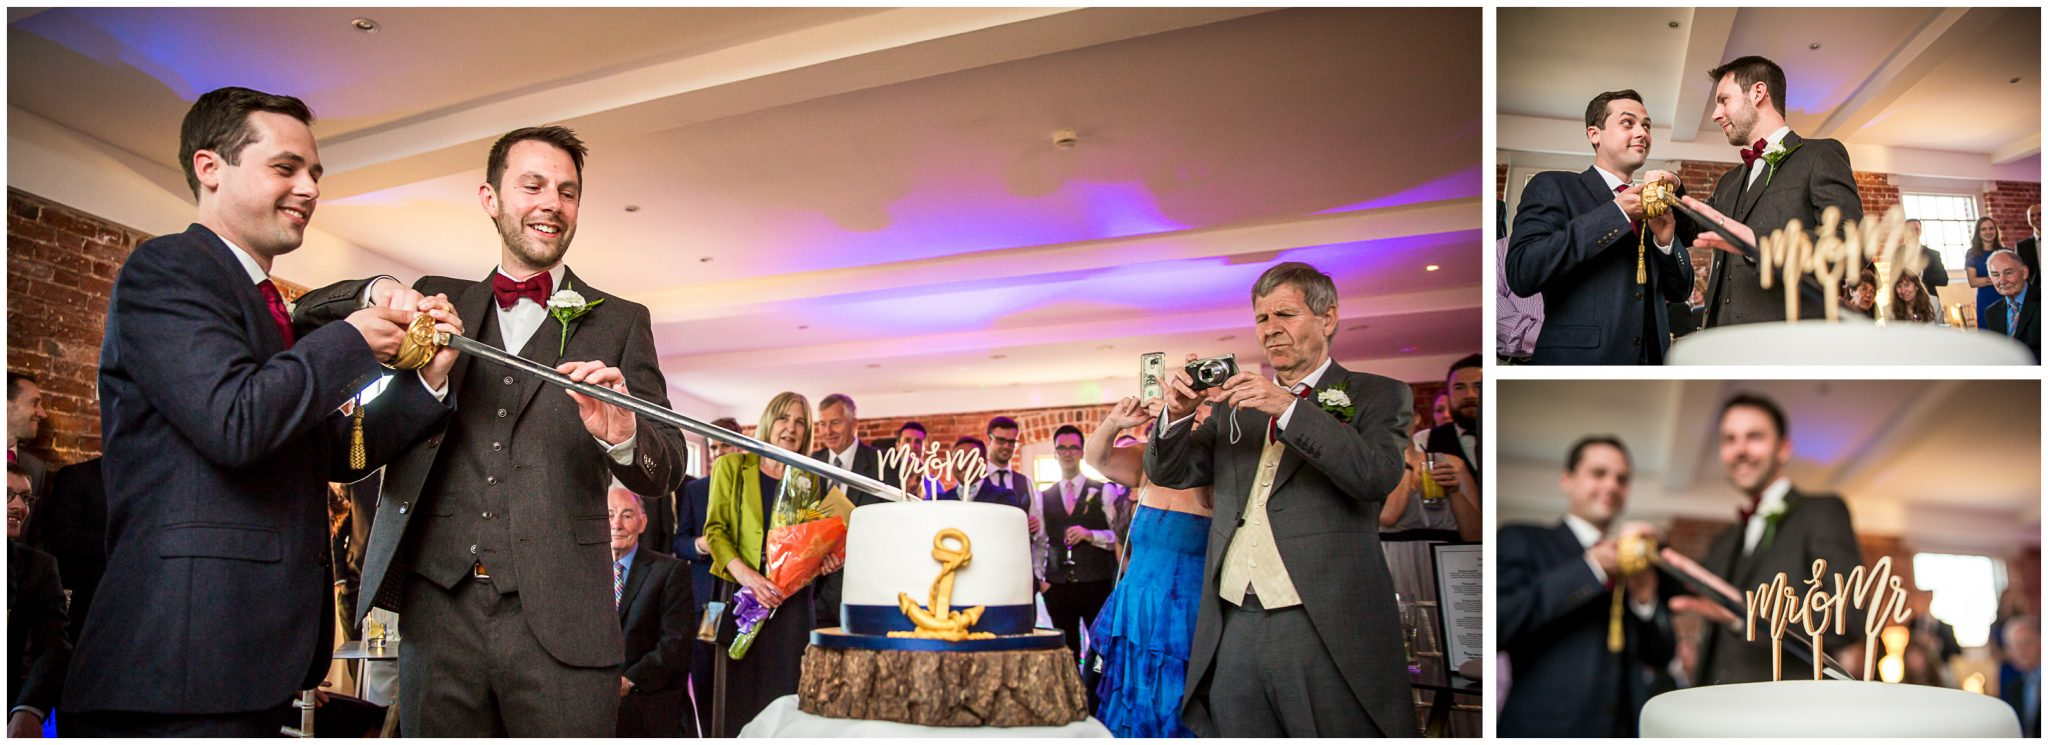 Sopley wedding photographer couple cutting cake with ceremonial sword